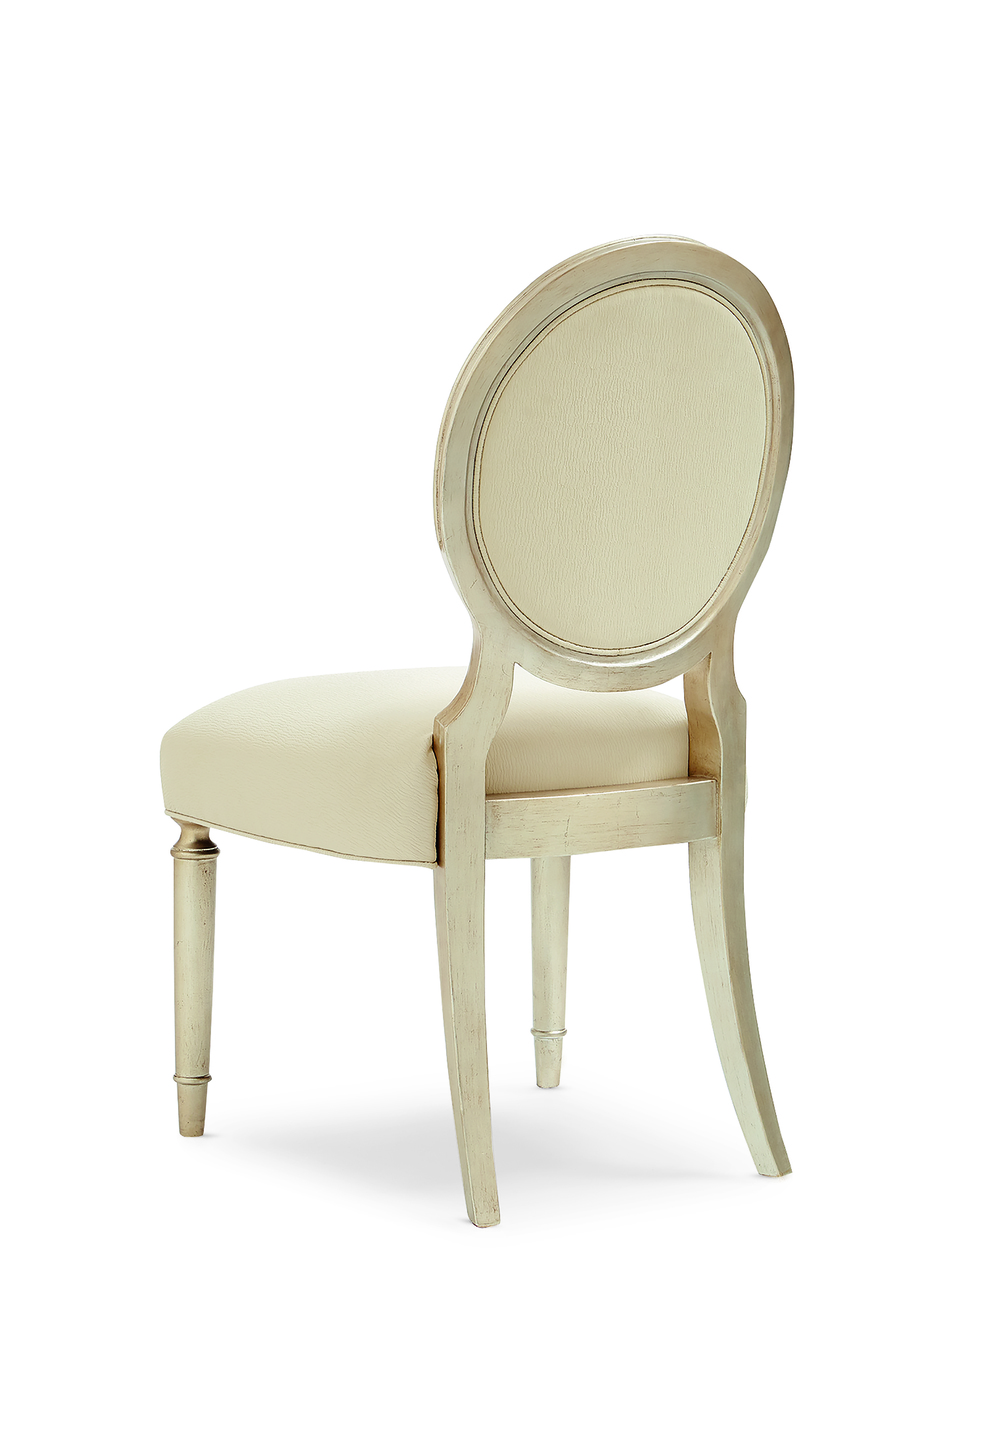 Caracole - May I Join You Chair